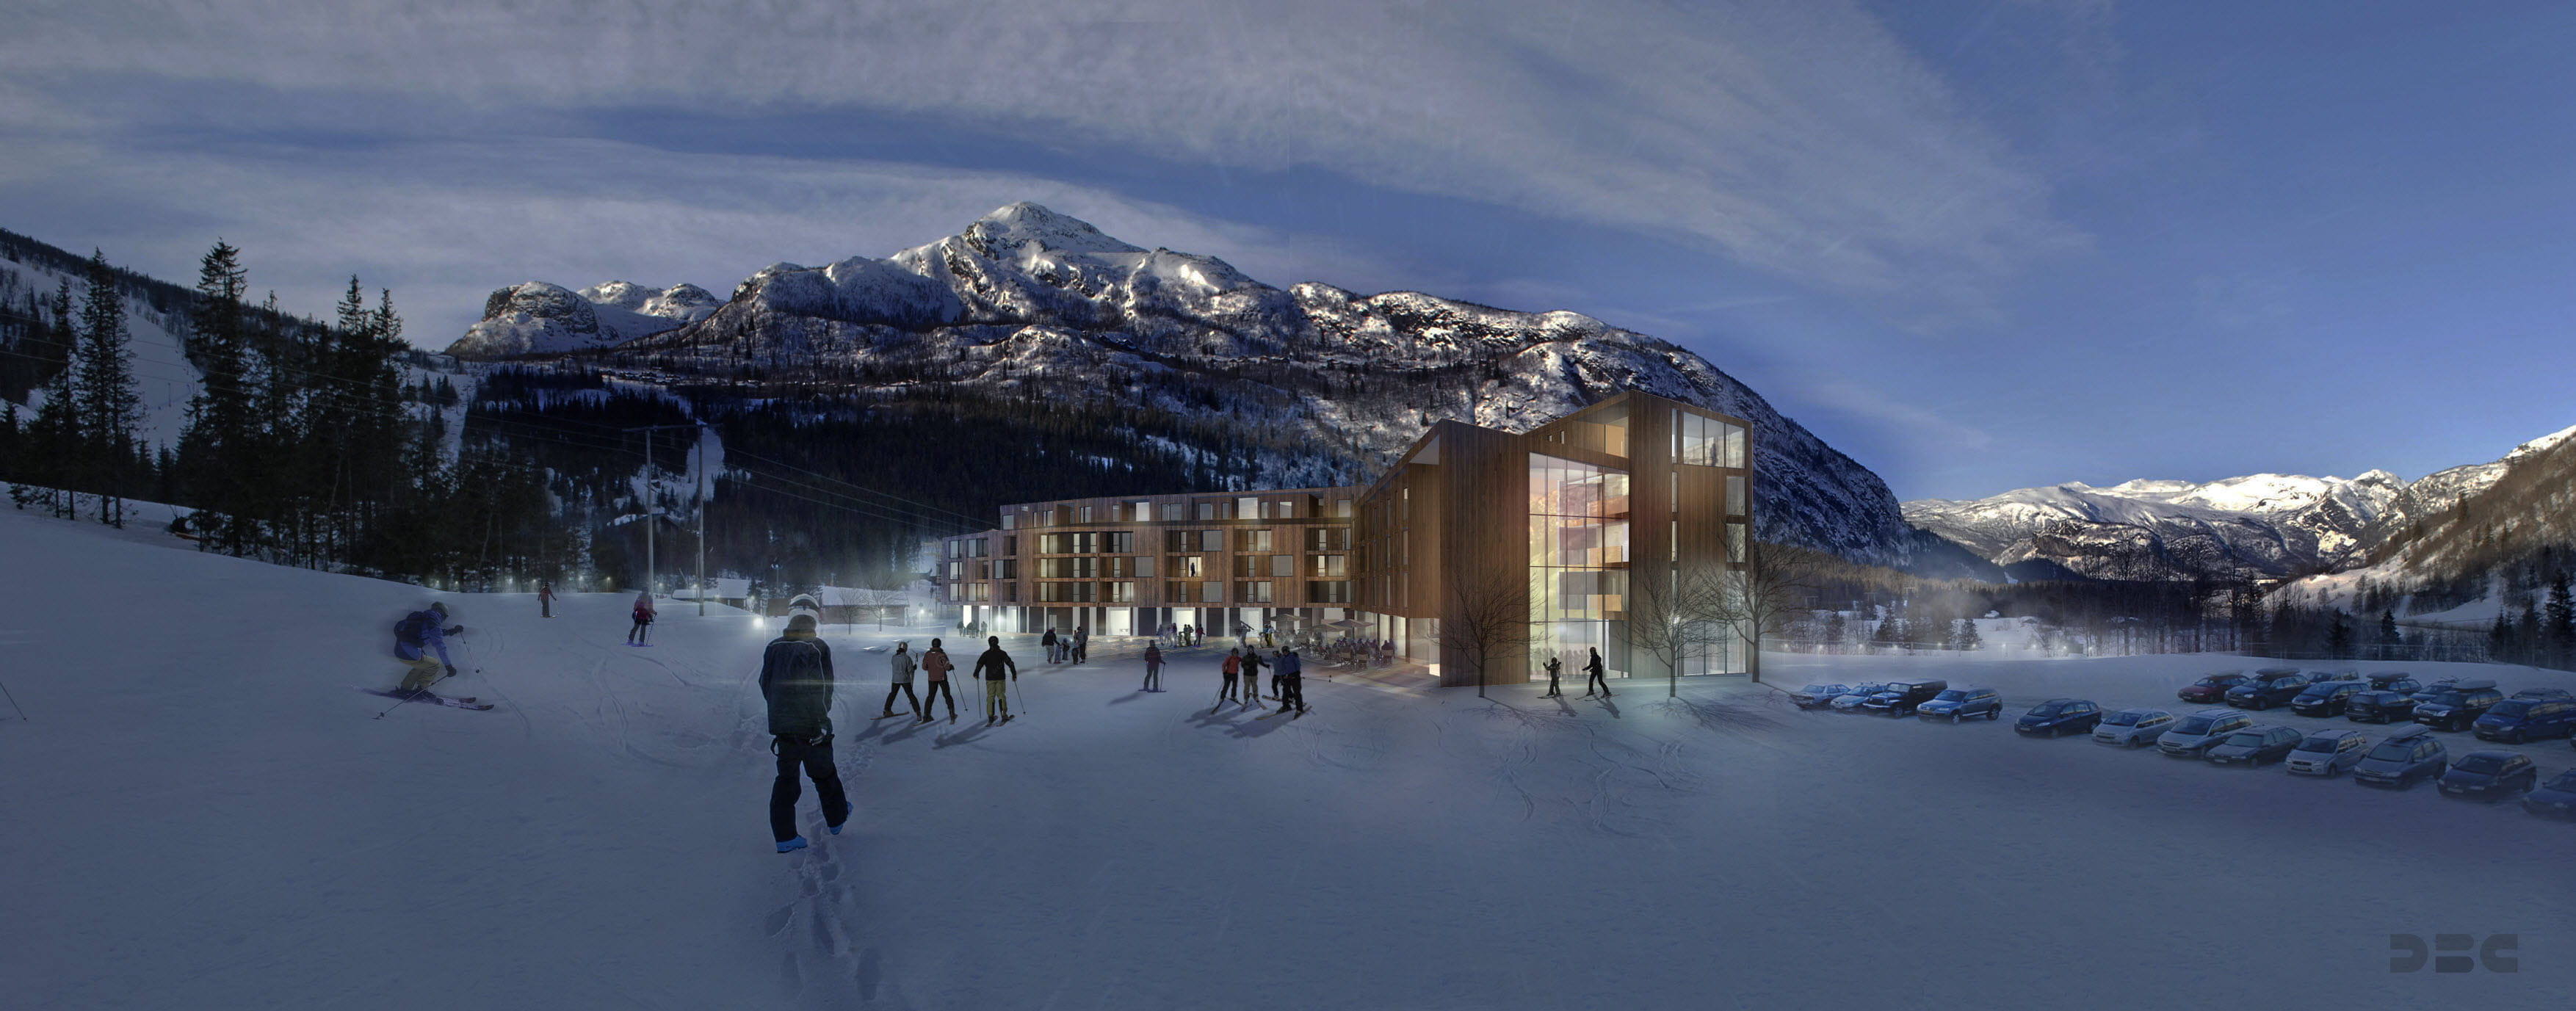 Animazione del Alpine Suites Hemsedal in Norvegia (© DBC AS)